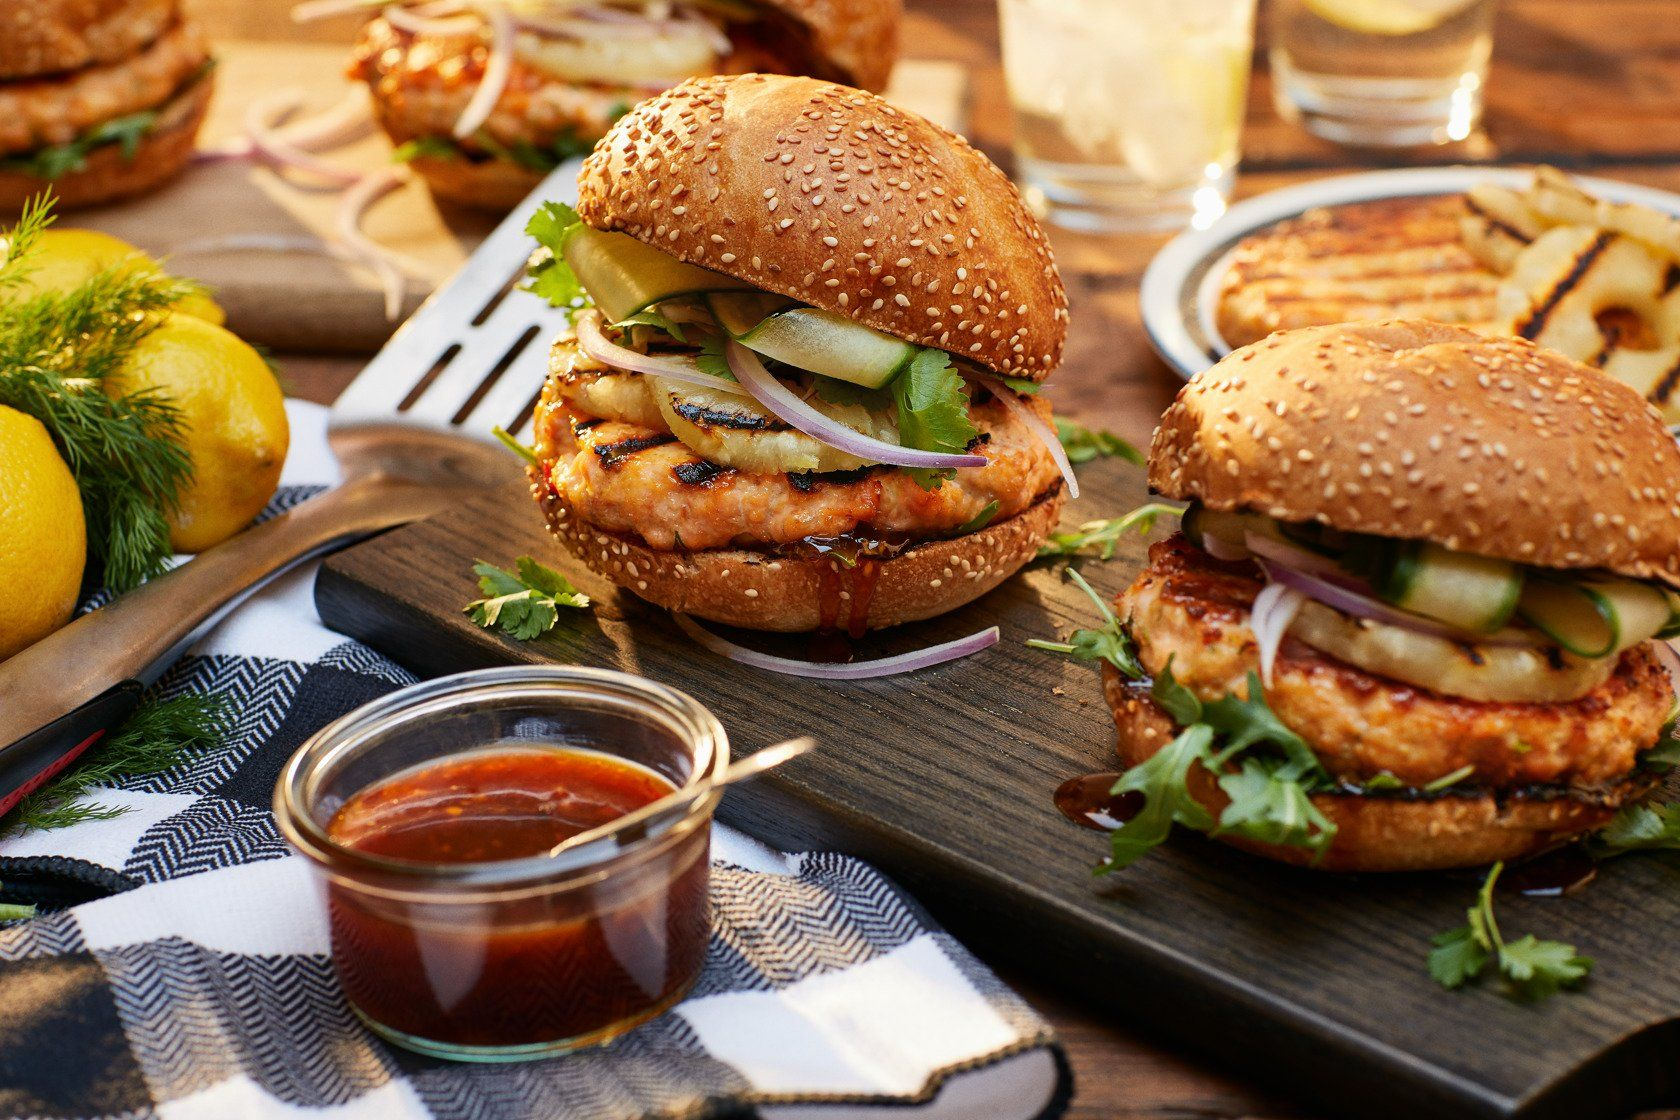 Grilled Salmon Burgers With Thai Sauce Char Broil Recipe In 2020 Salmon Burgers Grilled Salmon Burgers Grilled Salmon